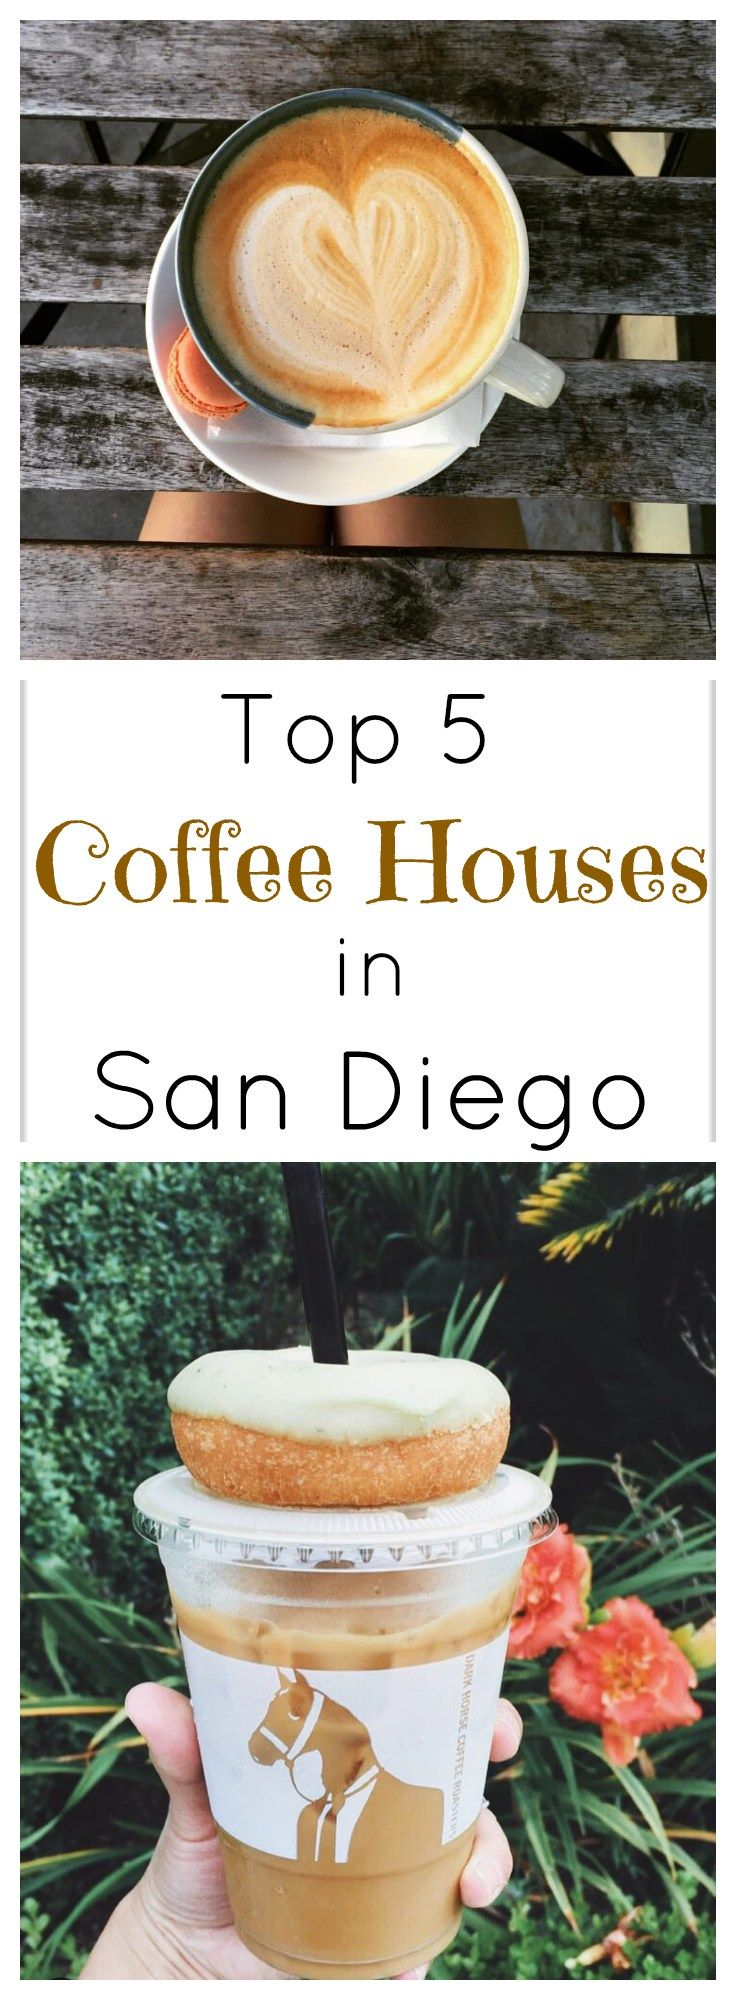 The top 5 coffee houses you must visit in San Diego 《dark horse or bird rock to try》